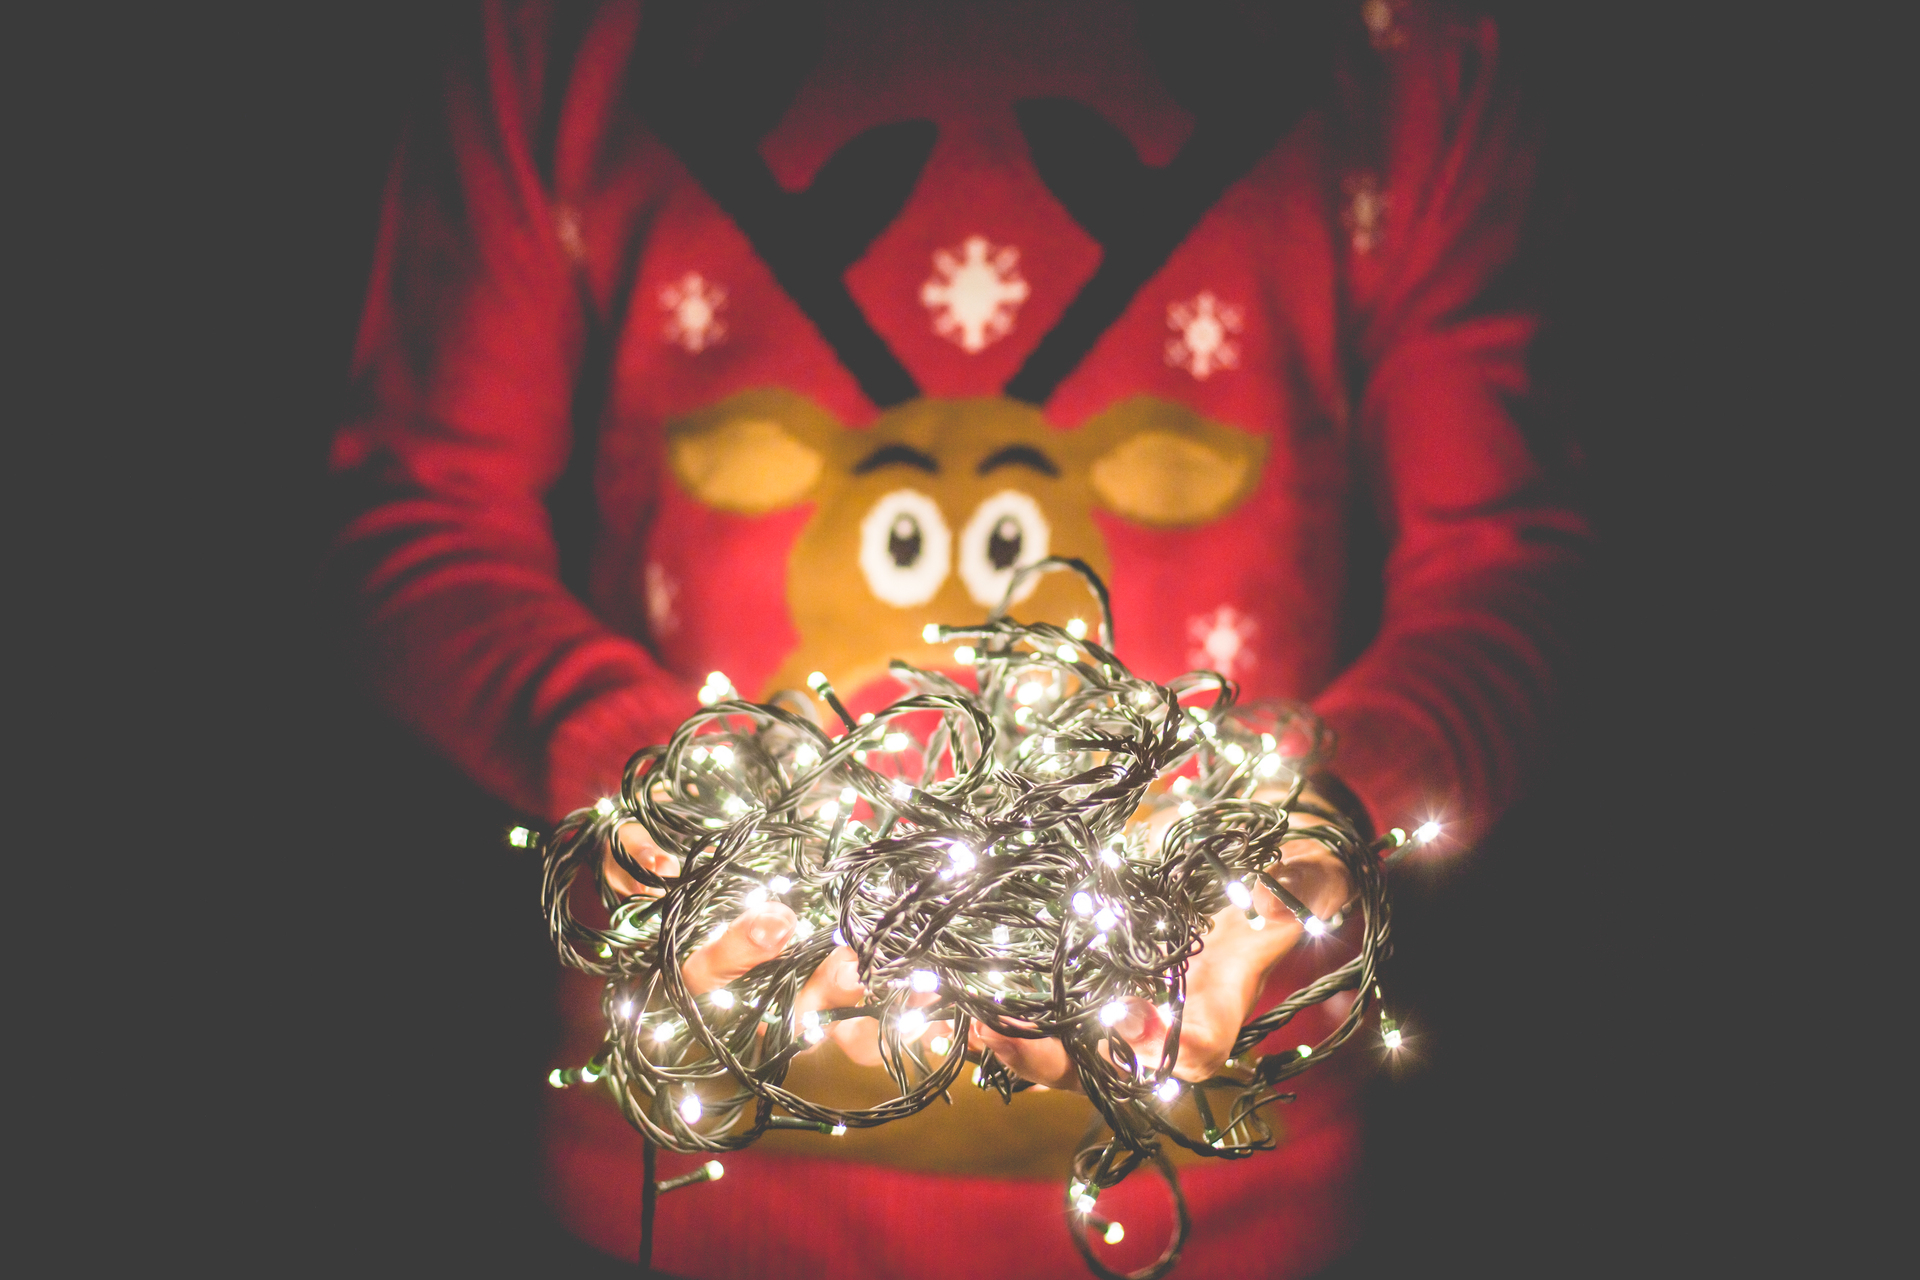 man-in-christmas-sweater-holding-christmas-lights-picjumbo-com